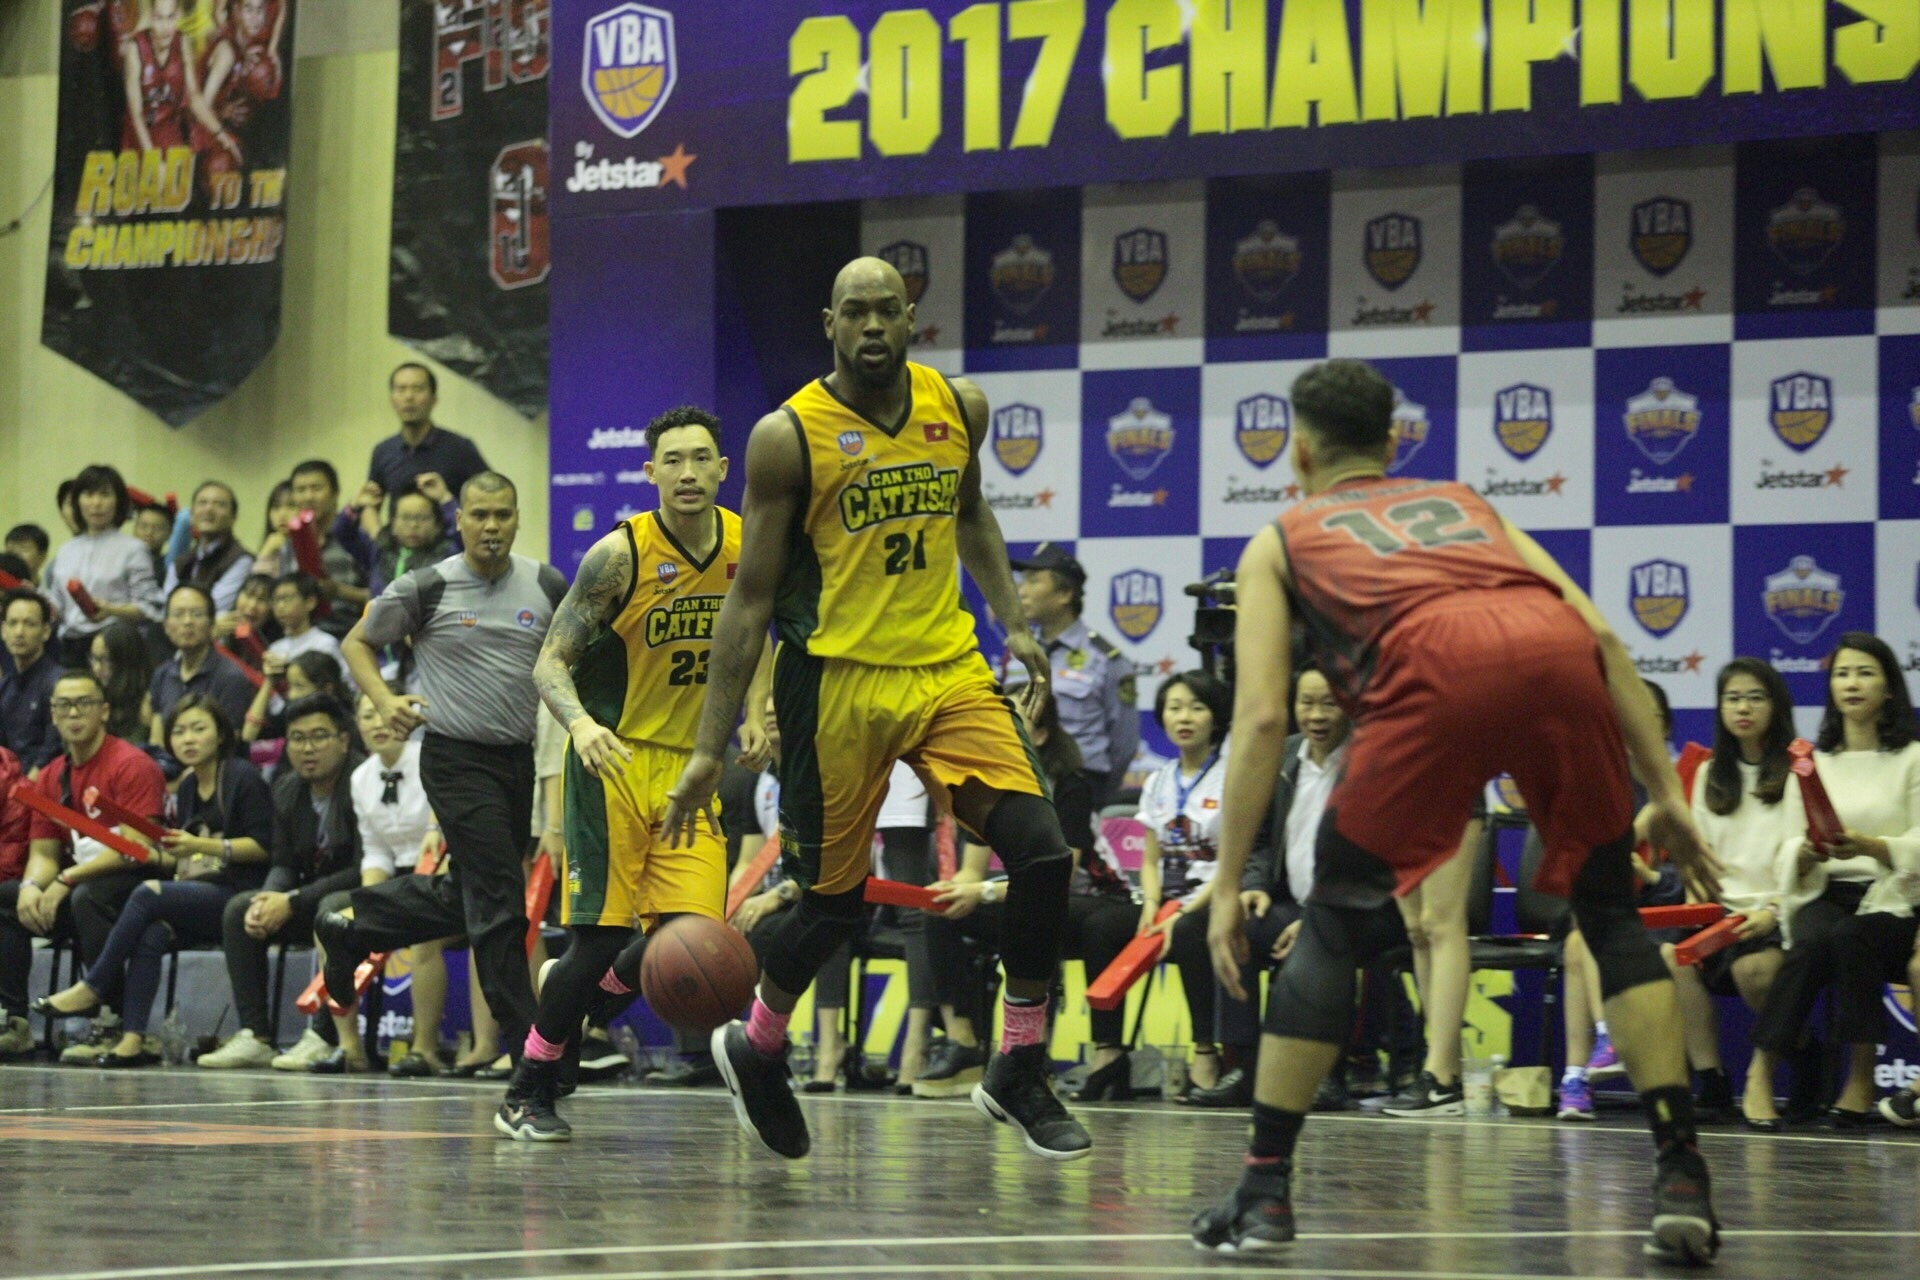 Thanglong Warriors vs Cantho Catfish anh 30